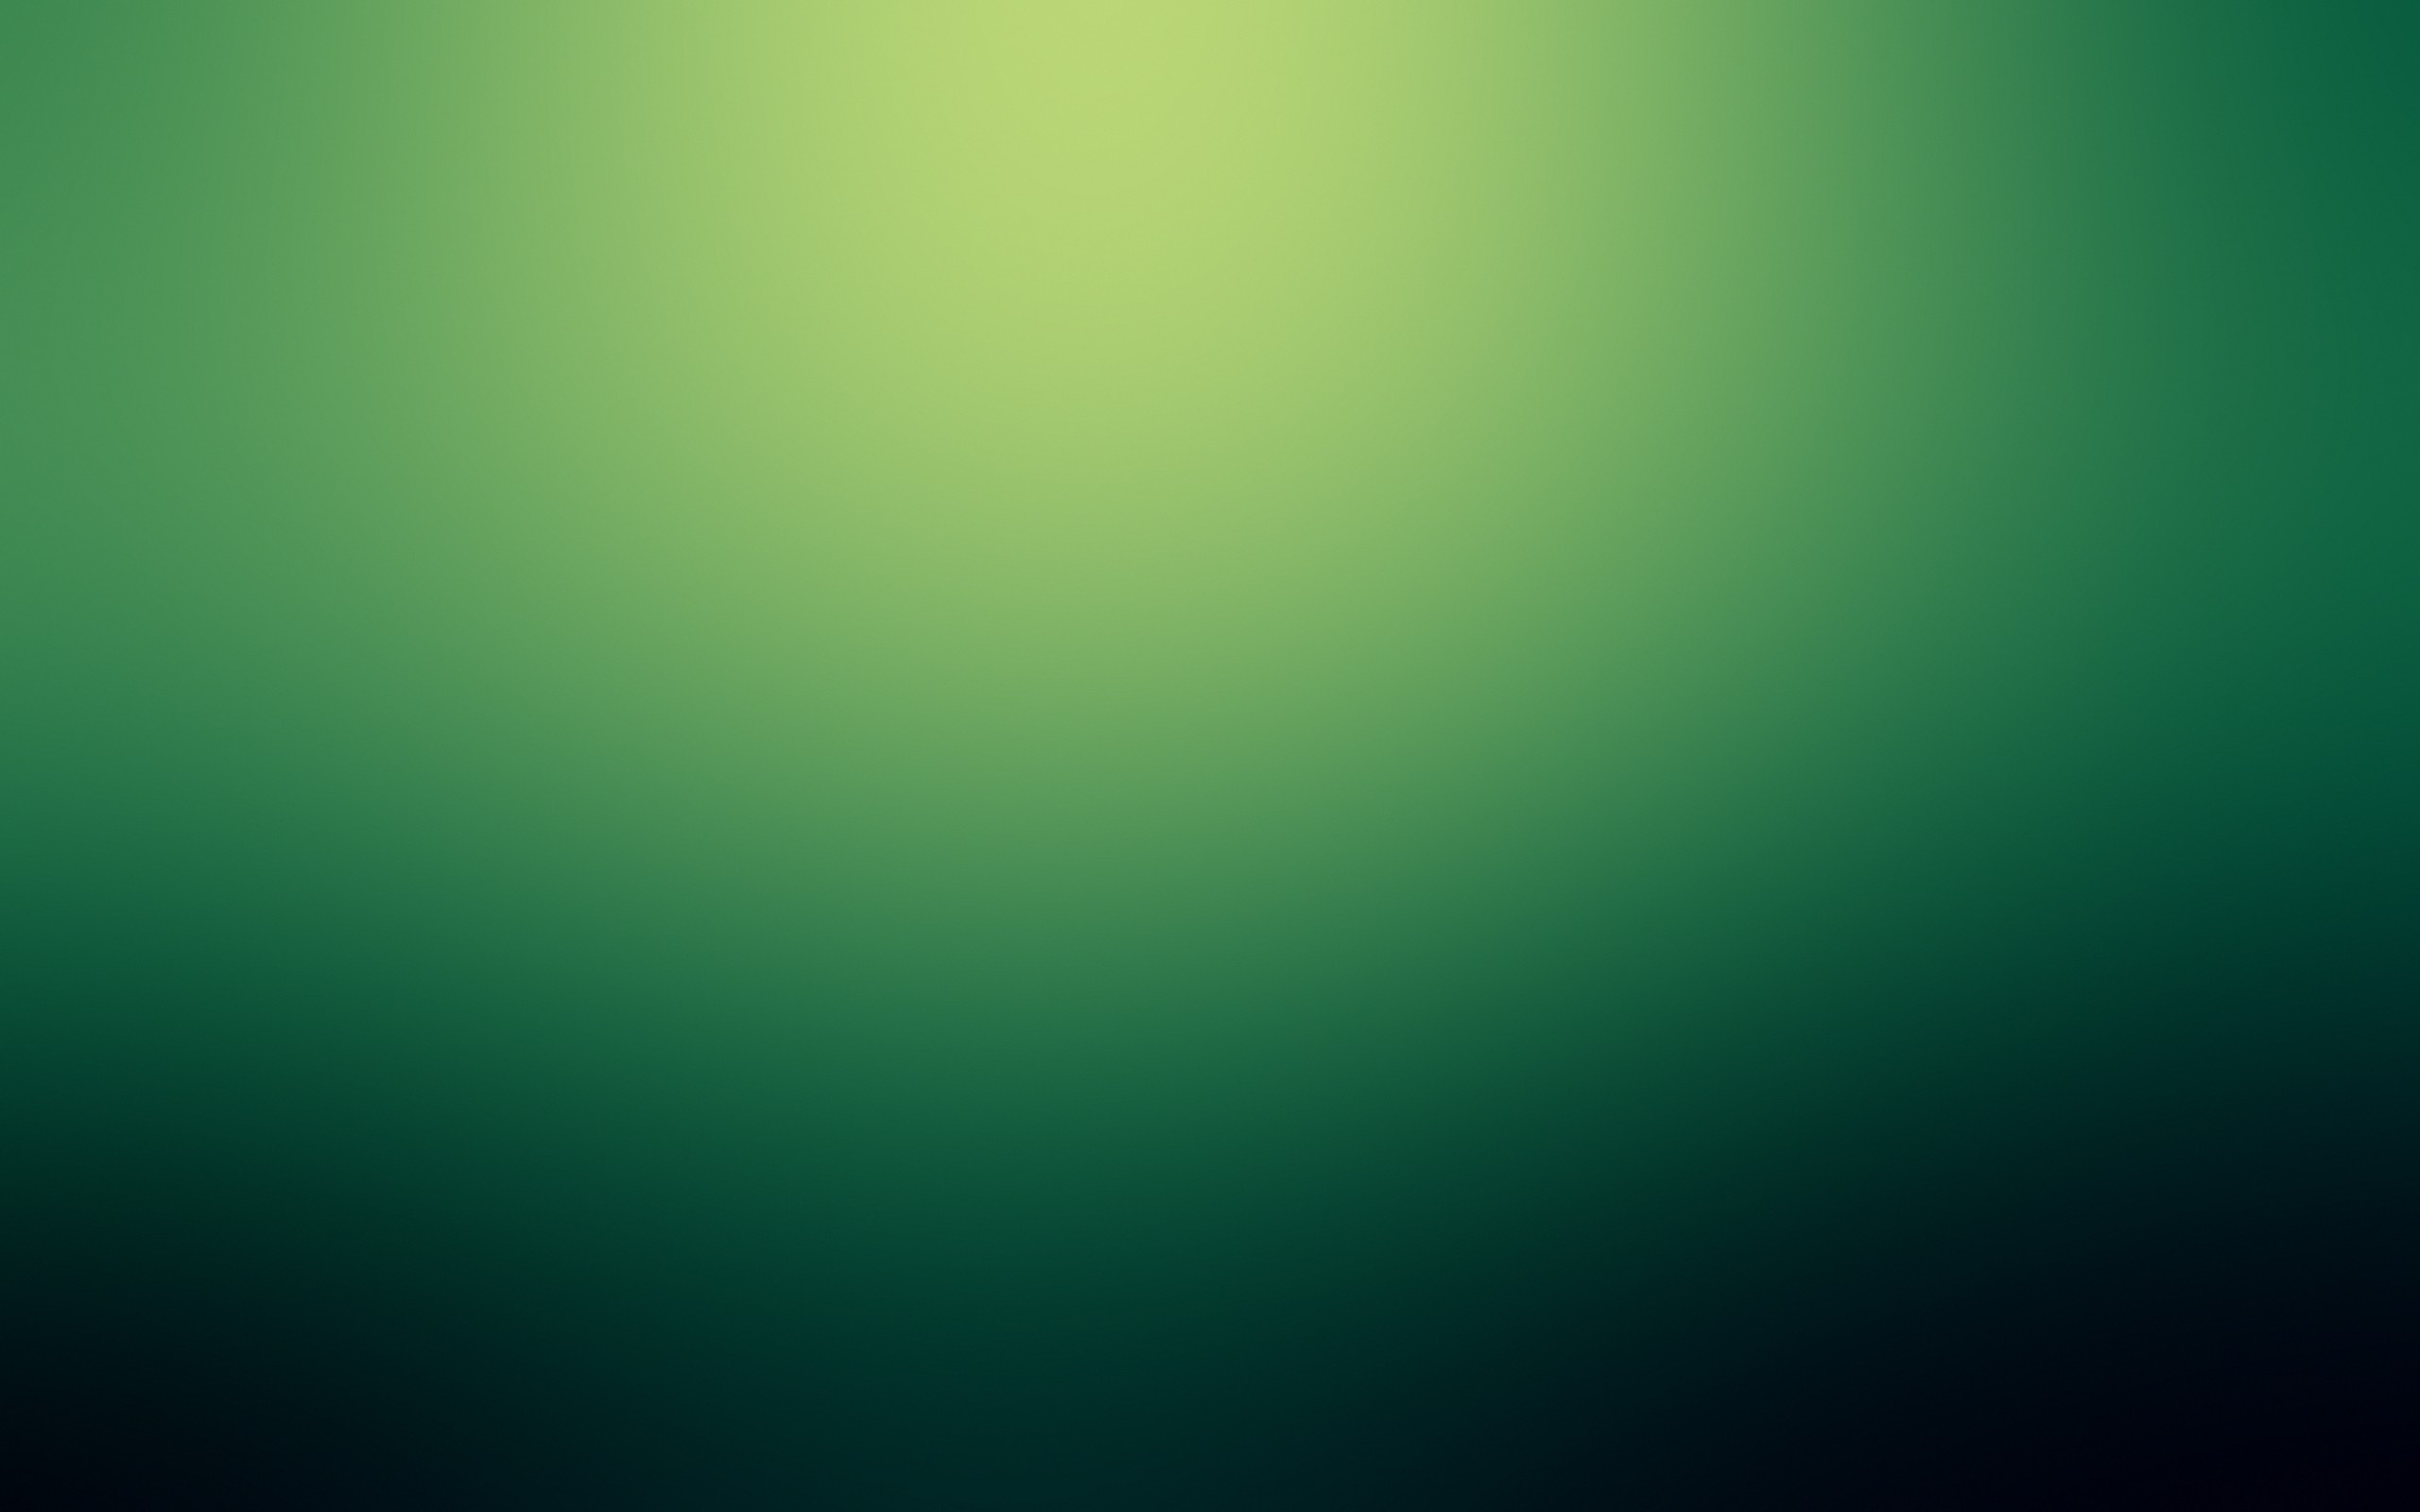 Image Green Gradient Background Wallpapers And Stock Photos